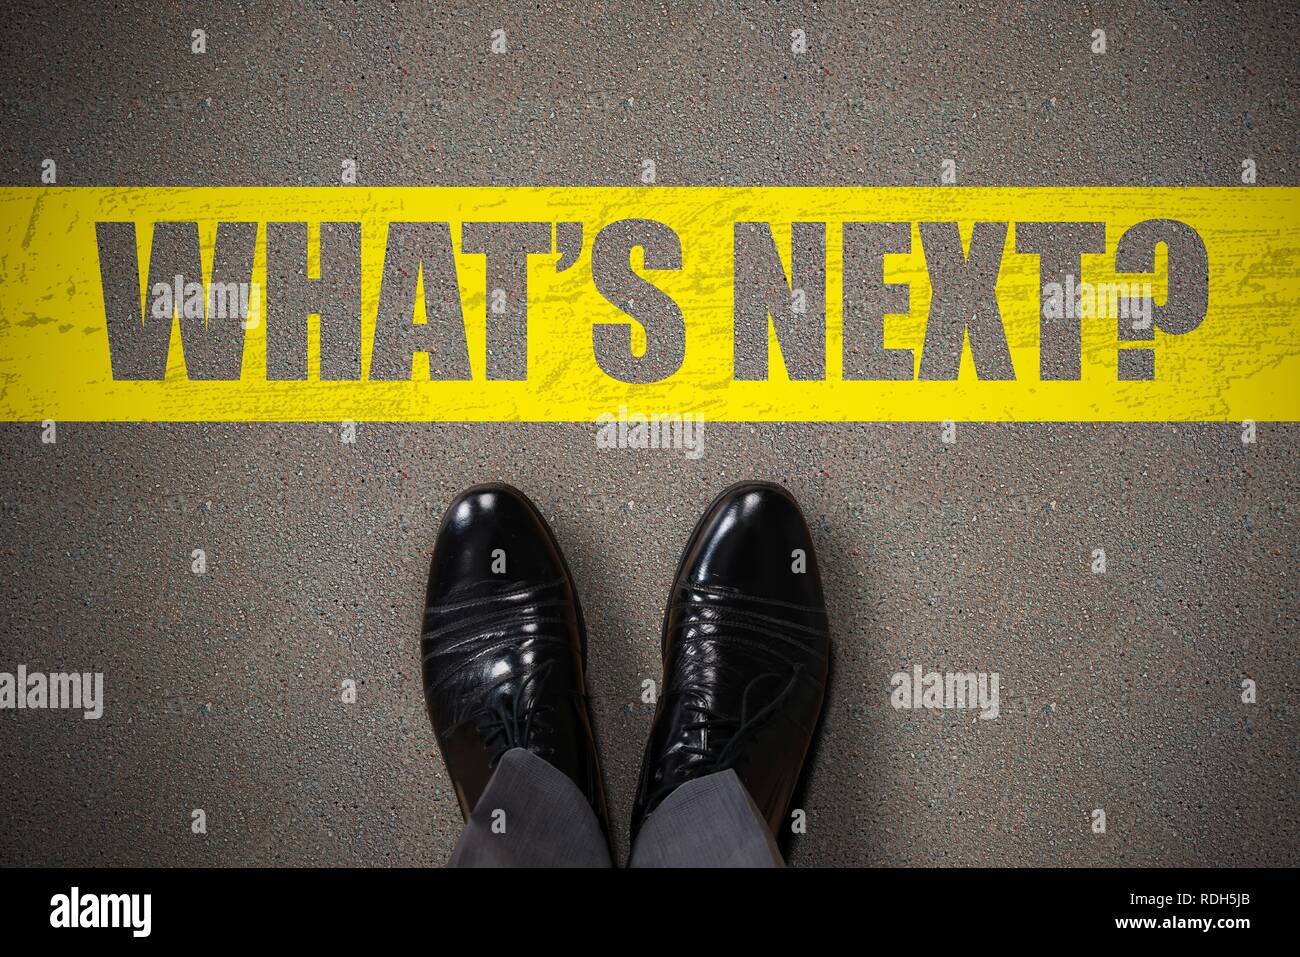 Person's Standing Next To What's Next Text On Asphalt Background - Stock Image